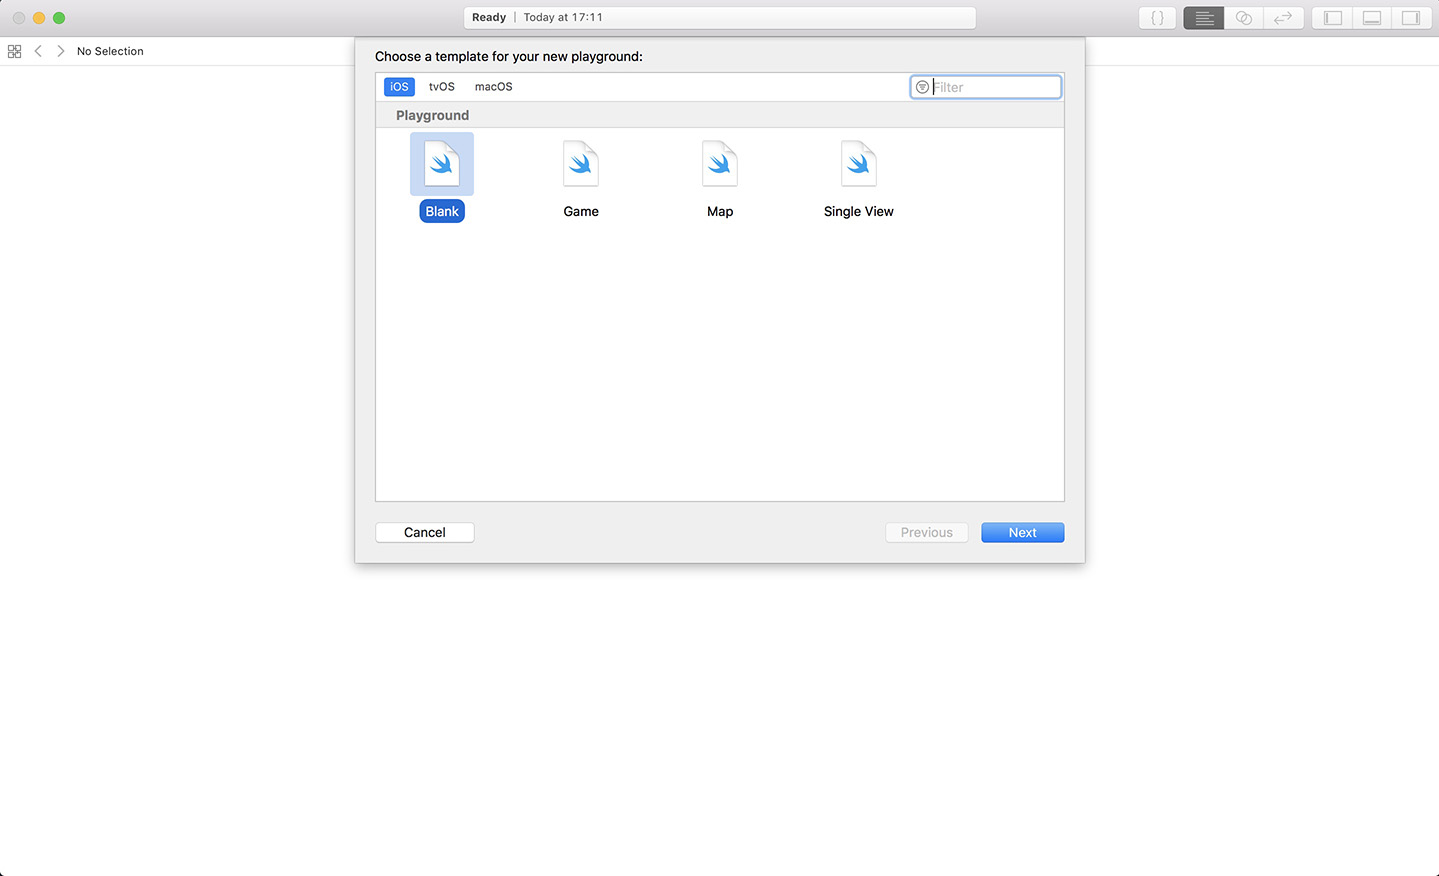 Choose the blank template in Xcode